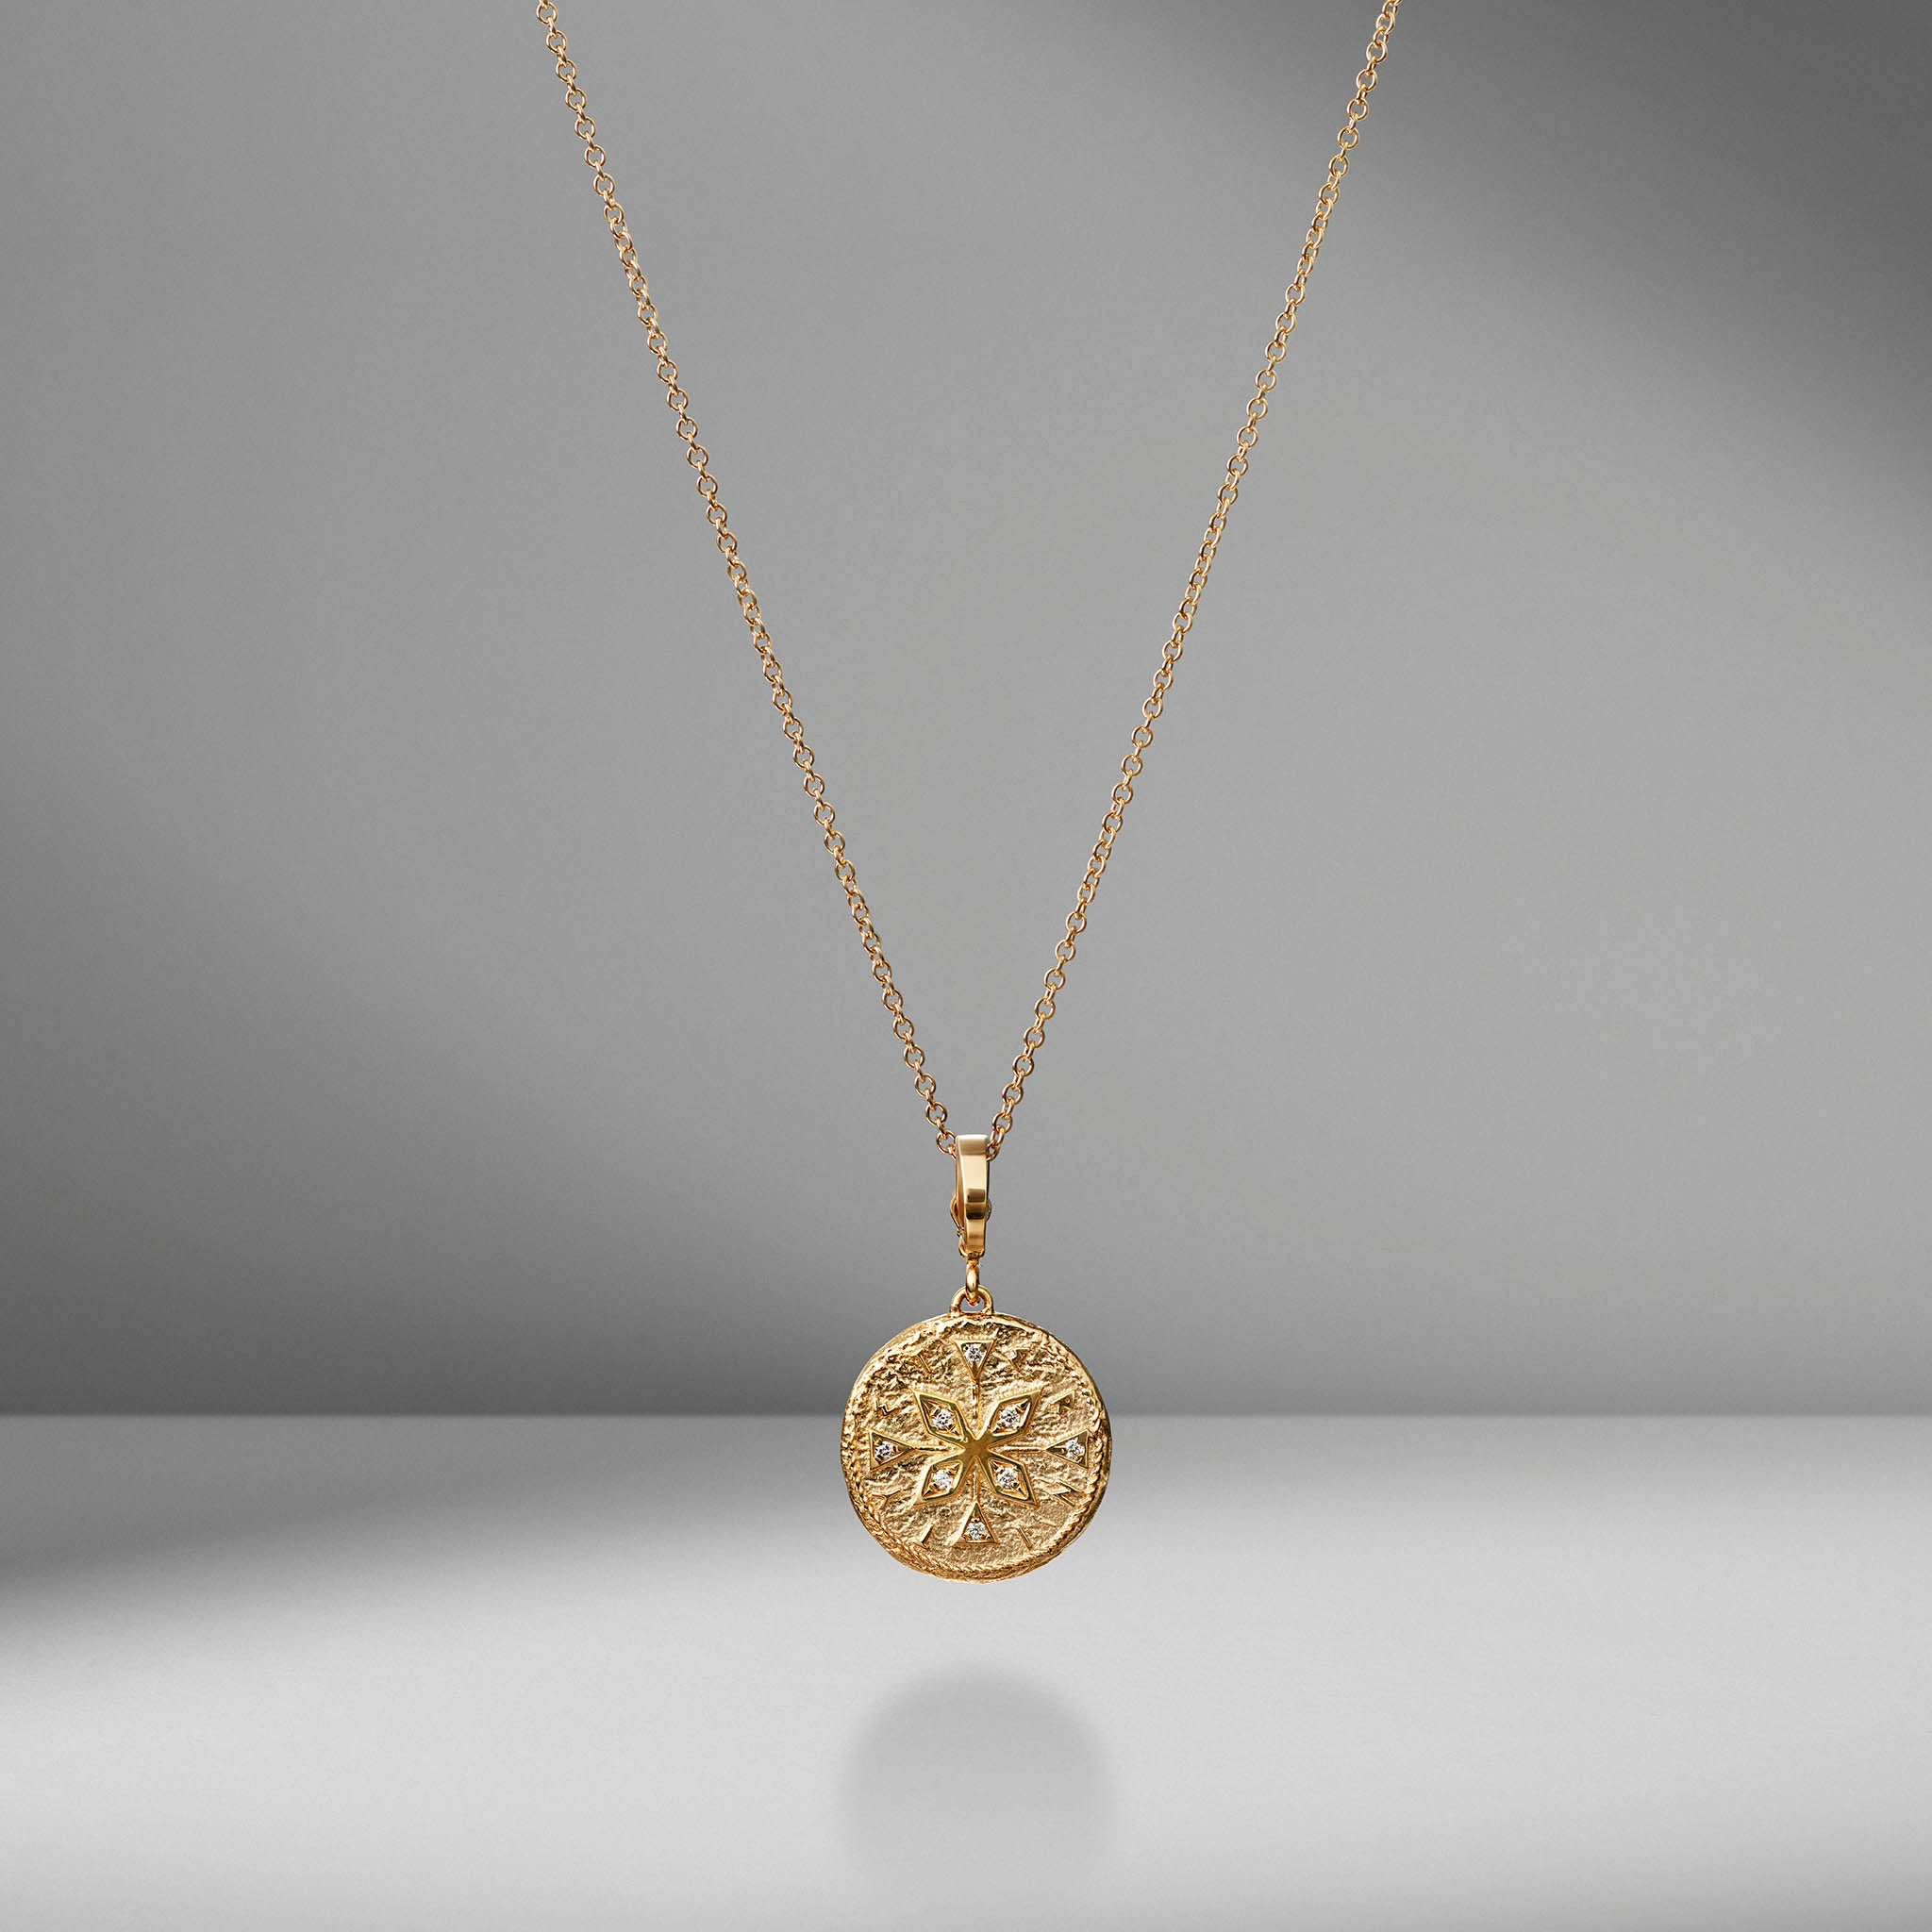 Small Compass Diamond Coin Charm Necklace